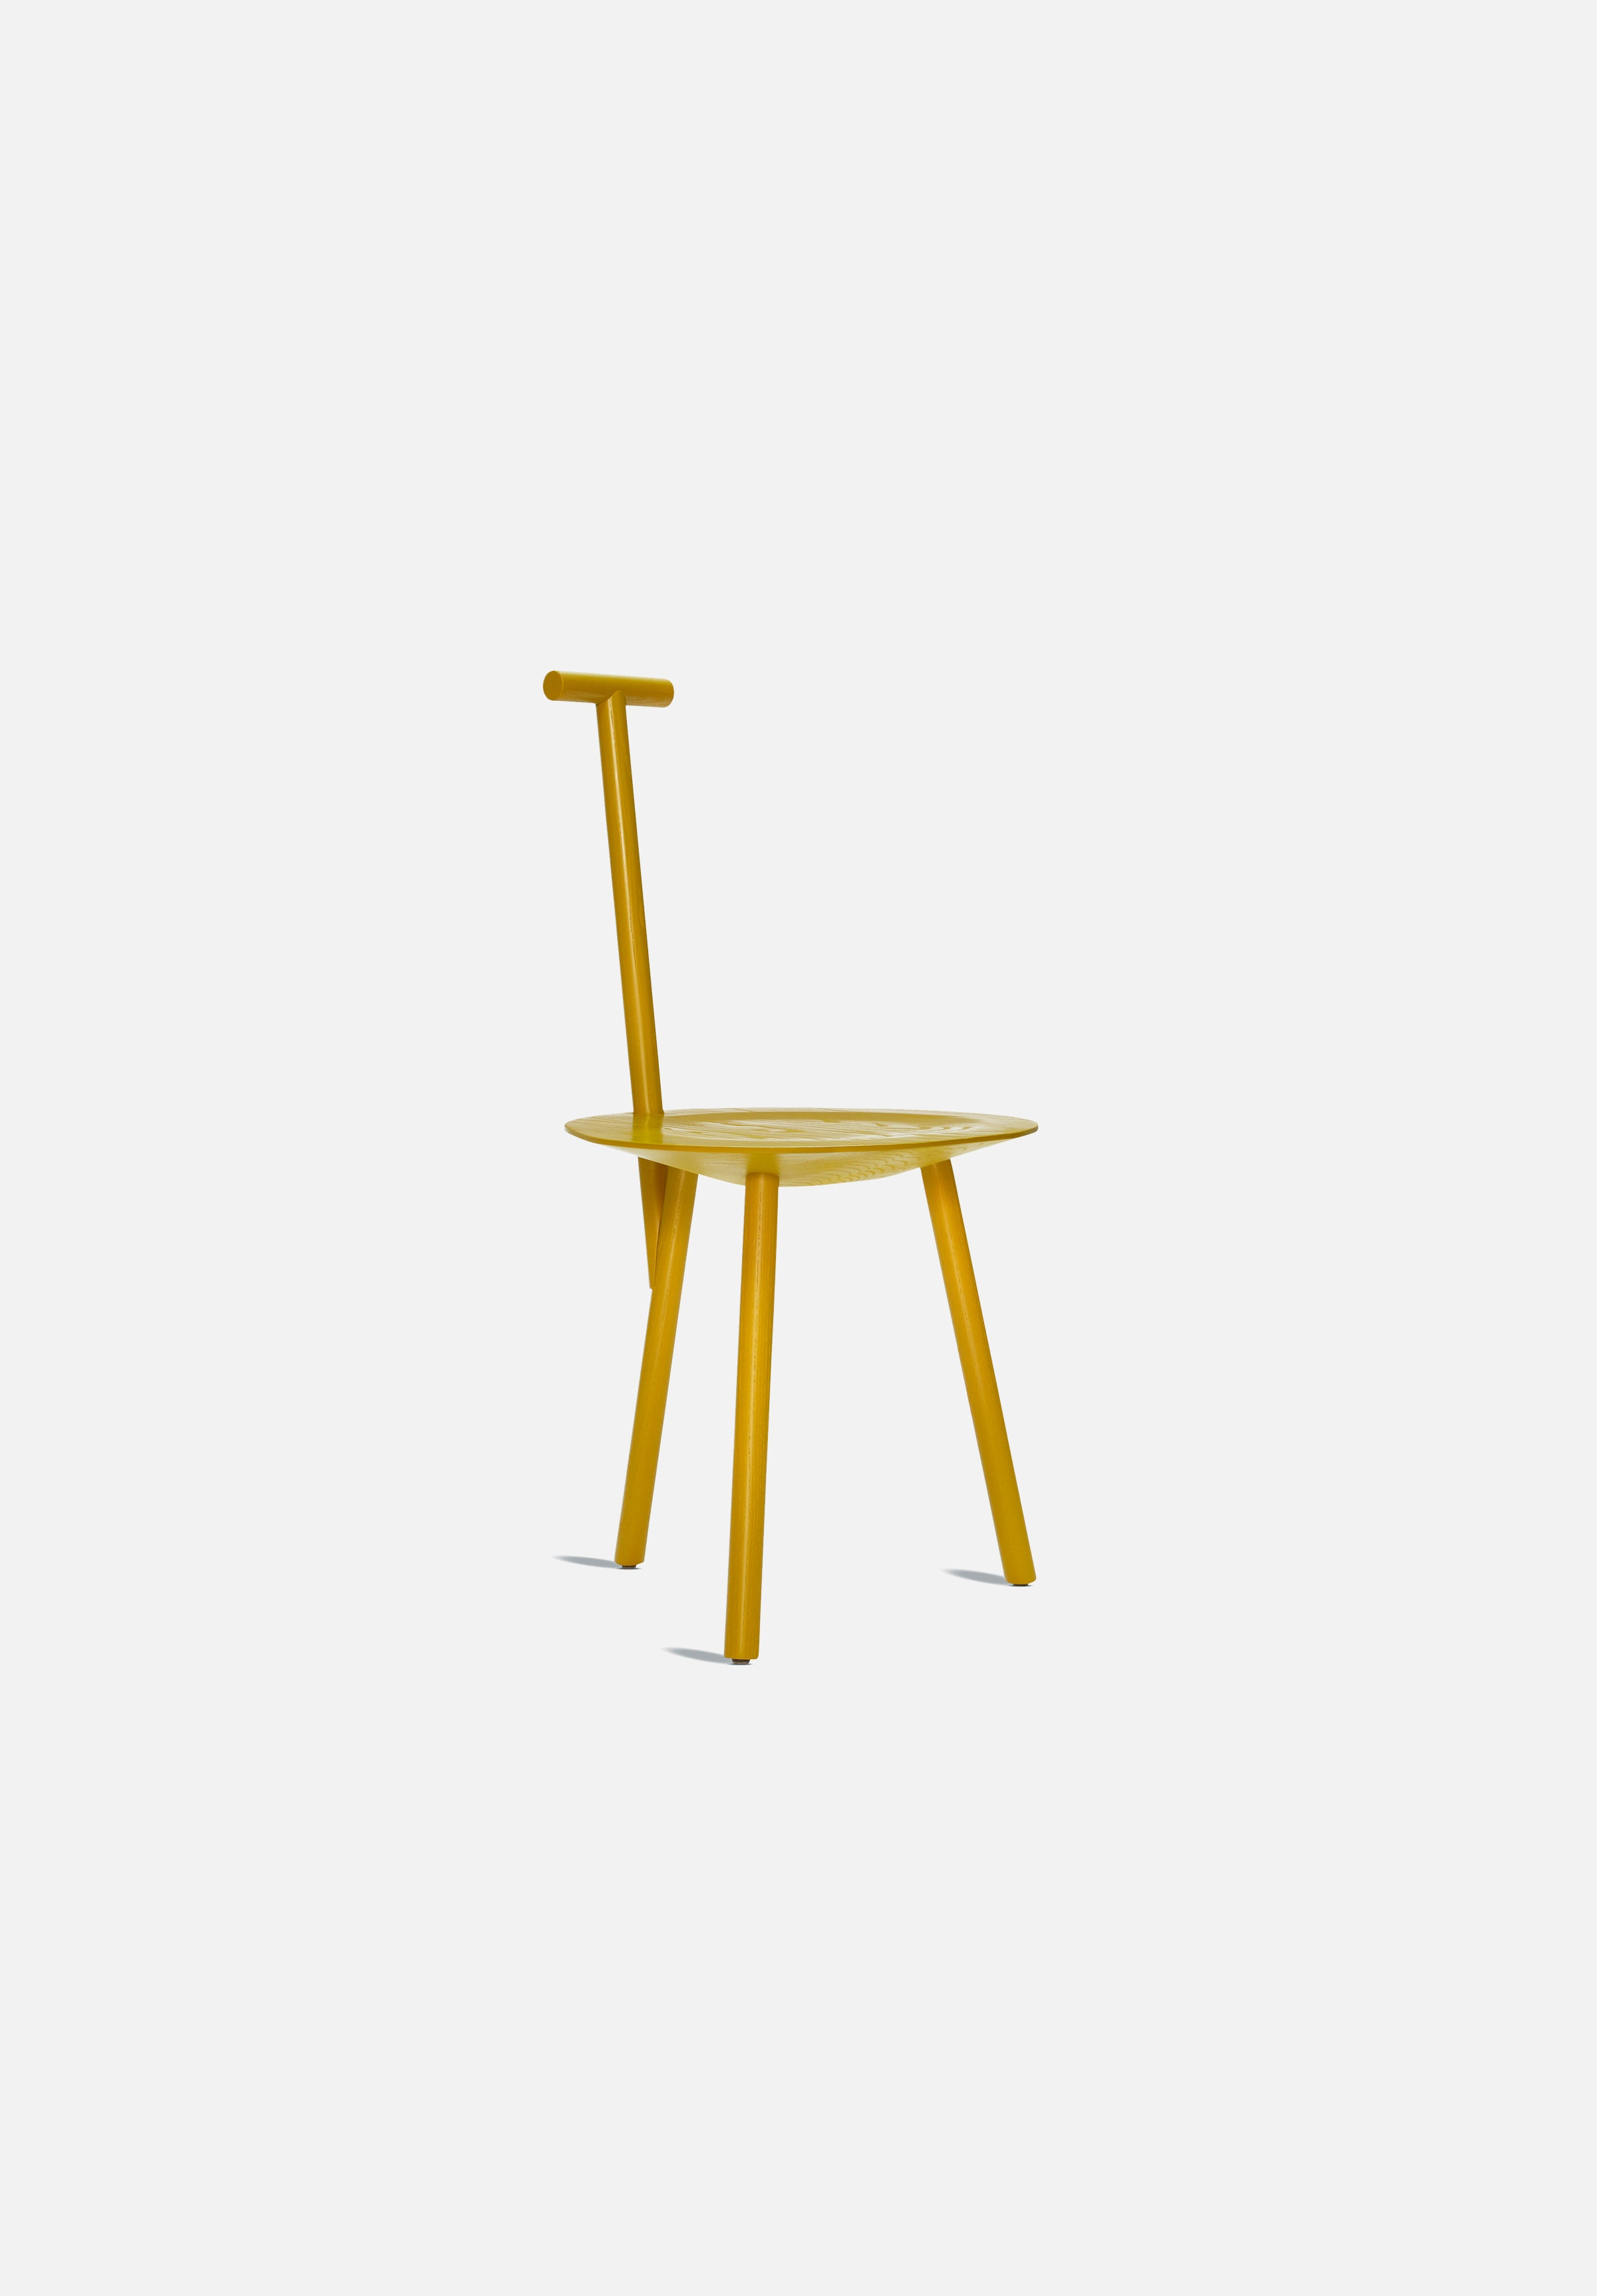 Spade Chair-Faye Toogood-Please Wait to be Seated-Turmeric Yellow-Average